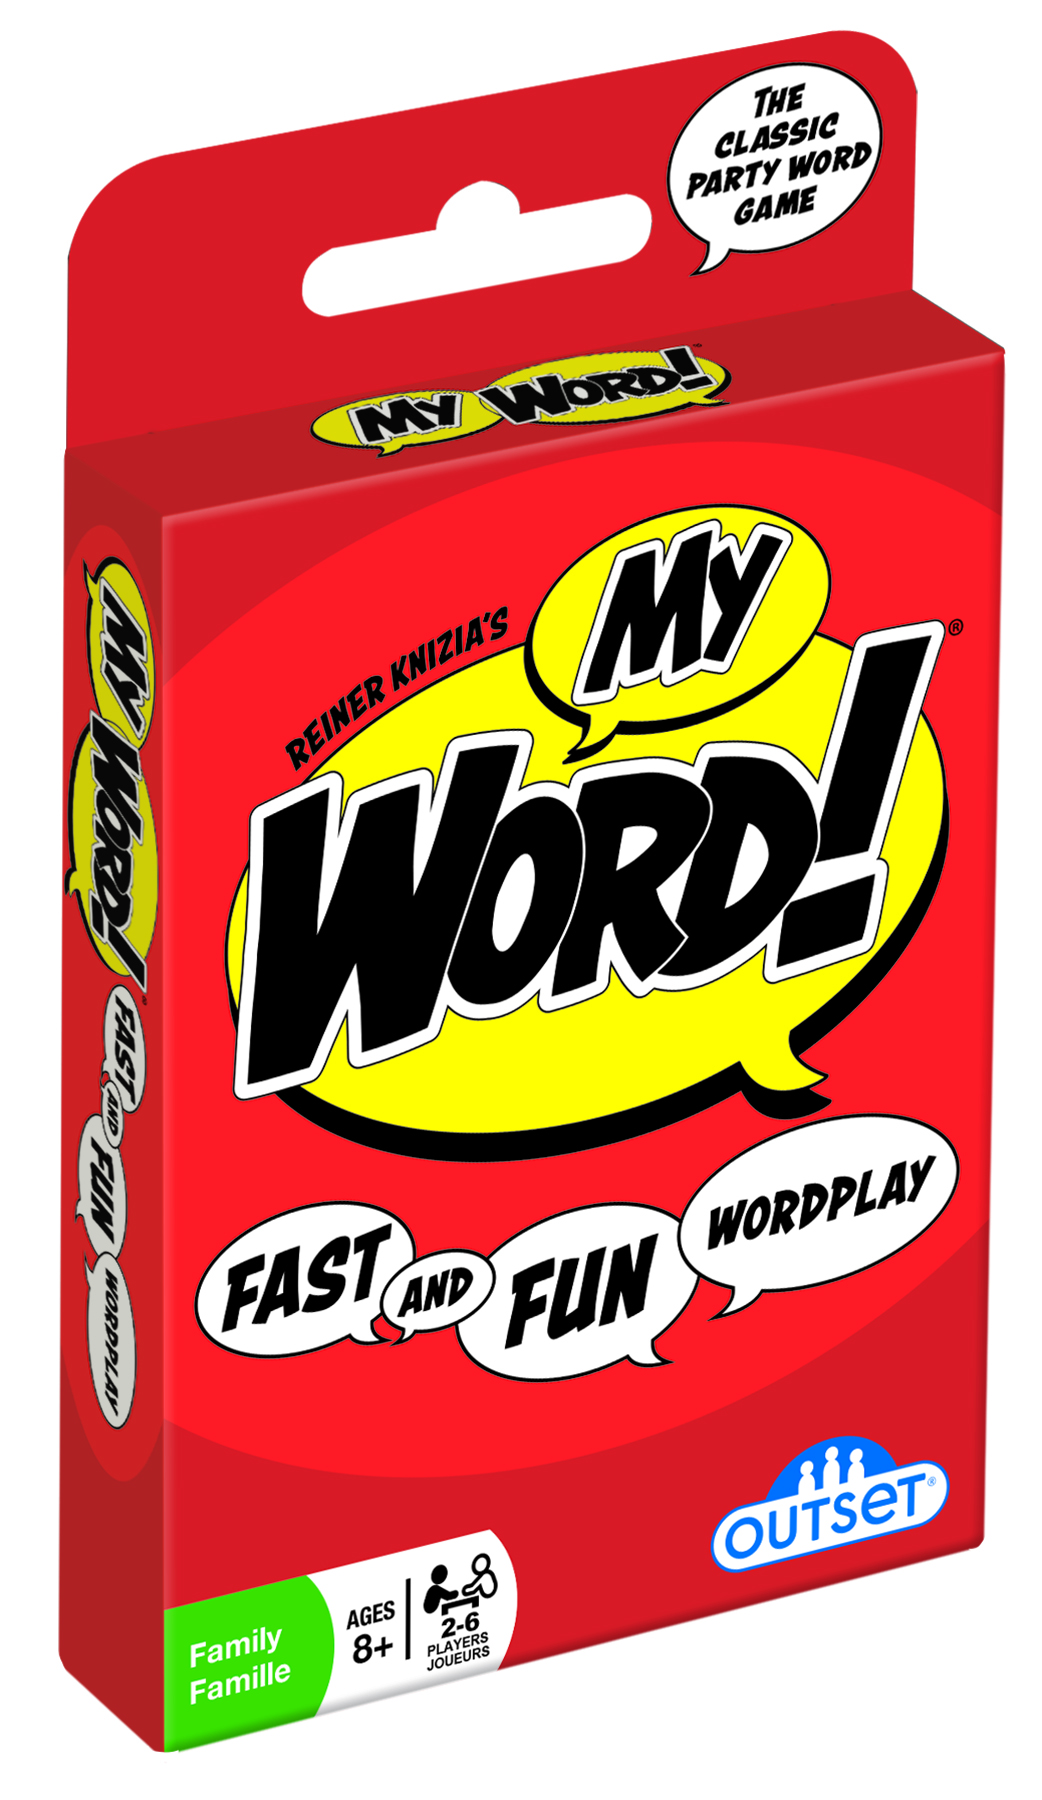 My Word! card game by Outset Media